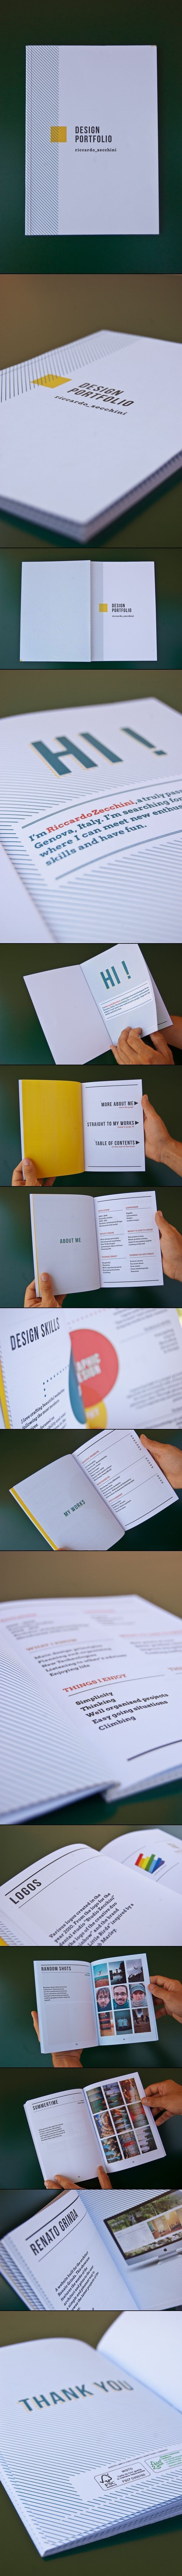 5253daa6b6dab a grouped image for pinterest - Pin Them All #resume #2017 #cv #template